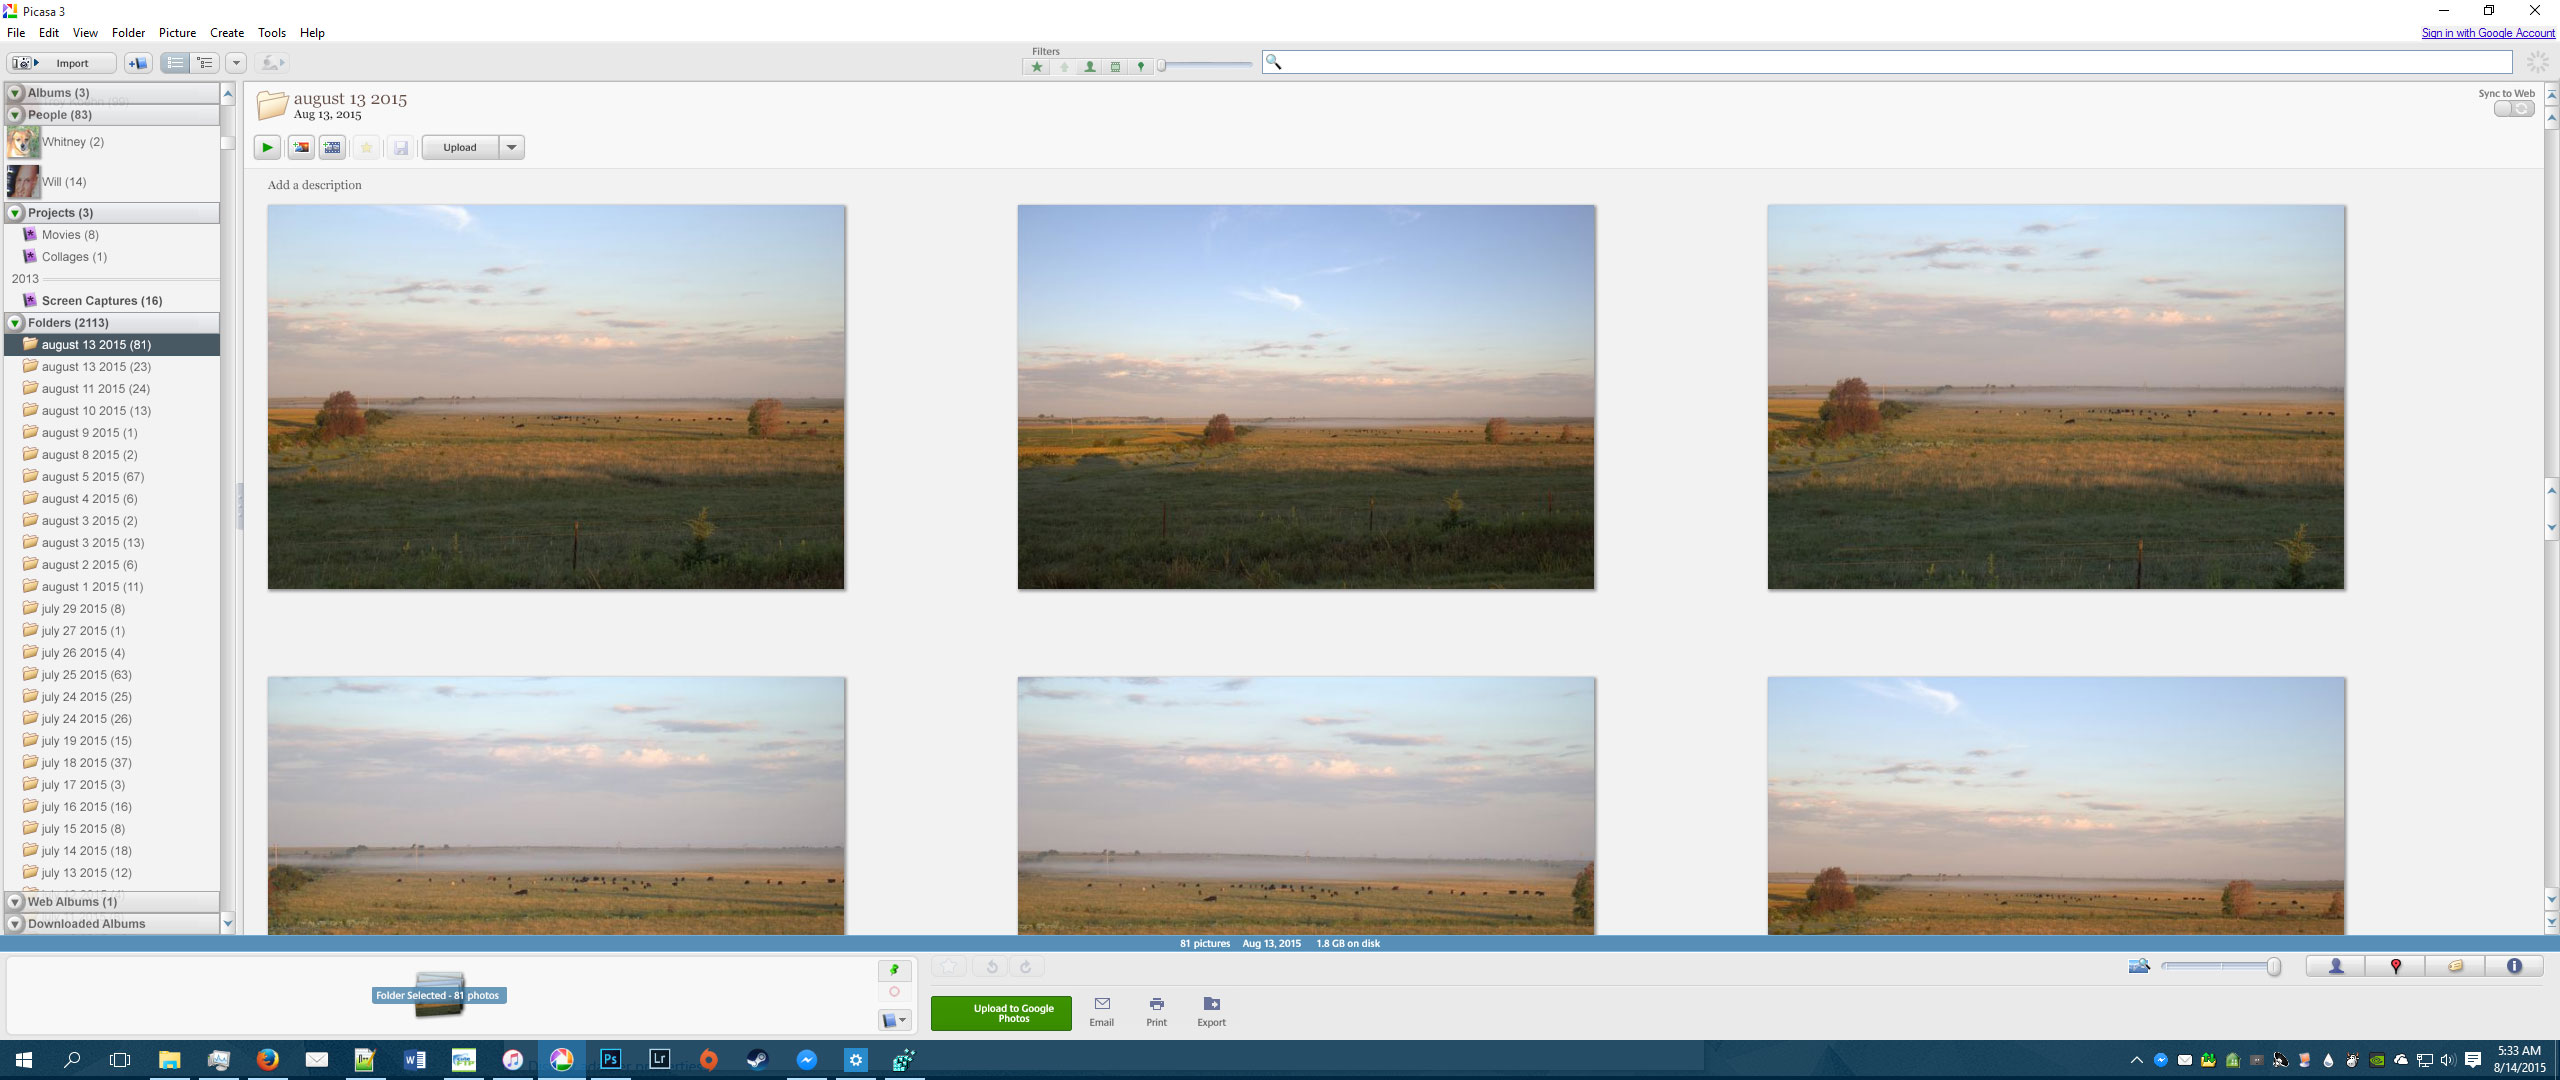 9 Photo Filter & Effects Applications to Replace Instagram Photo editing tips in picasa